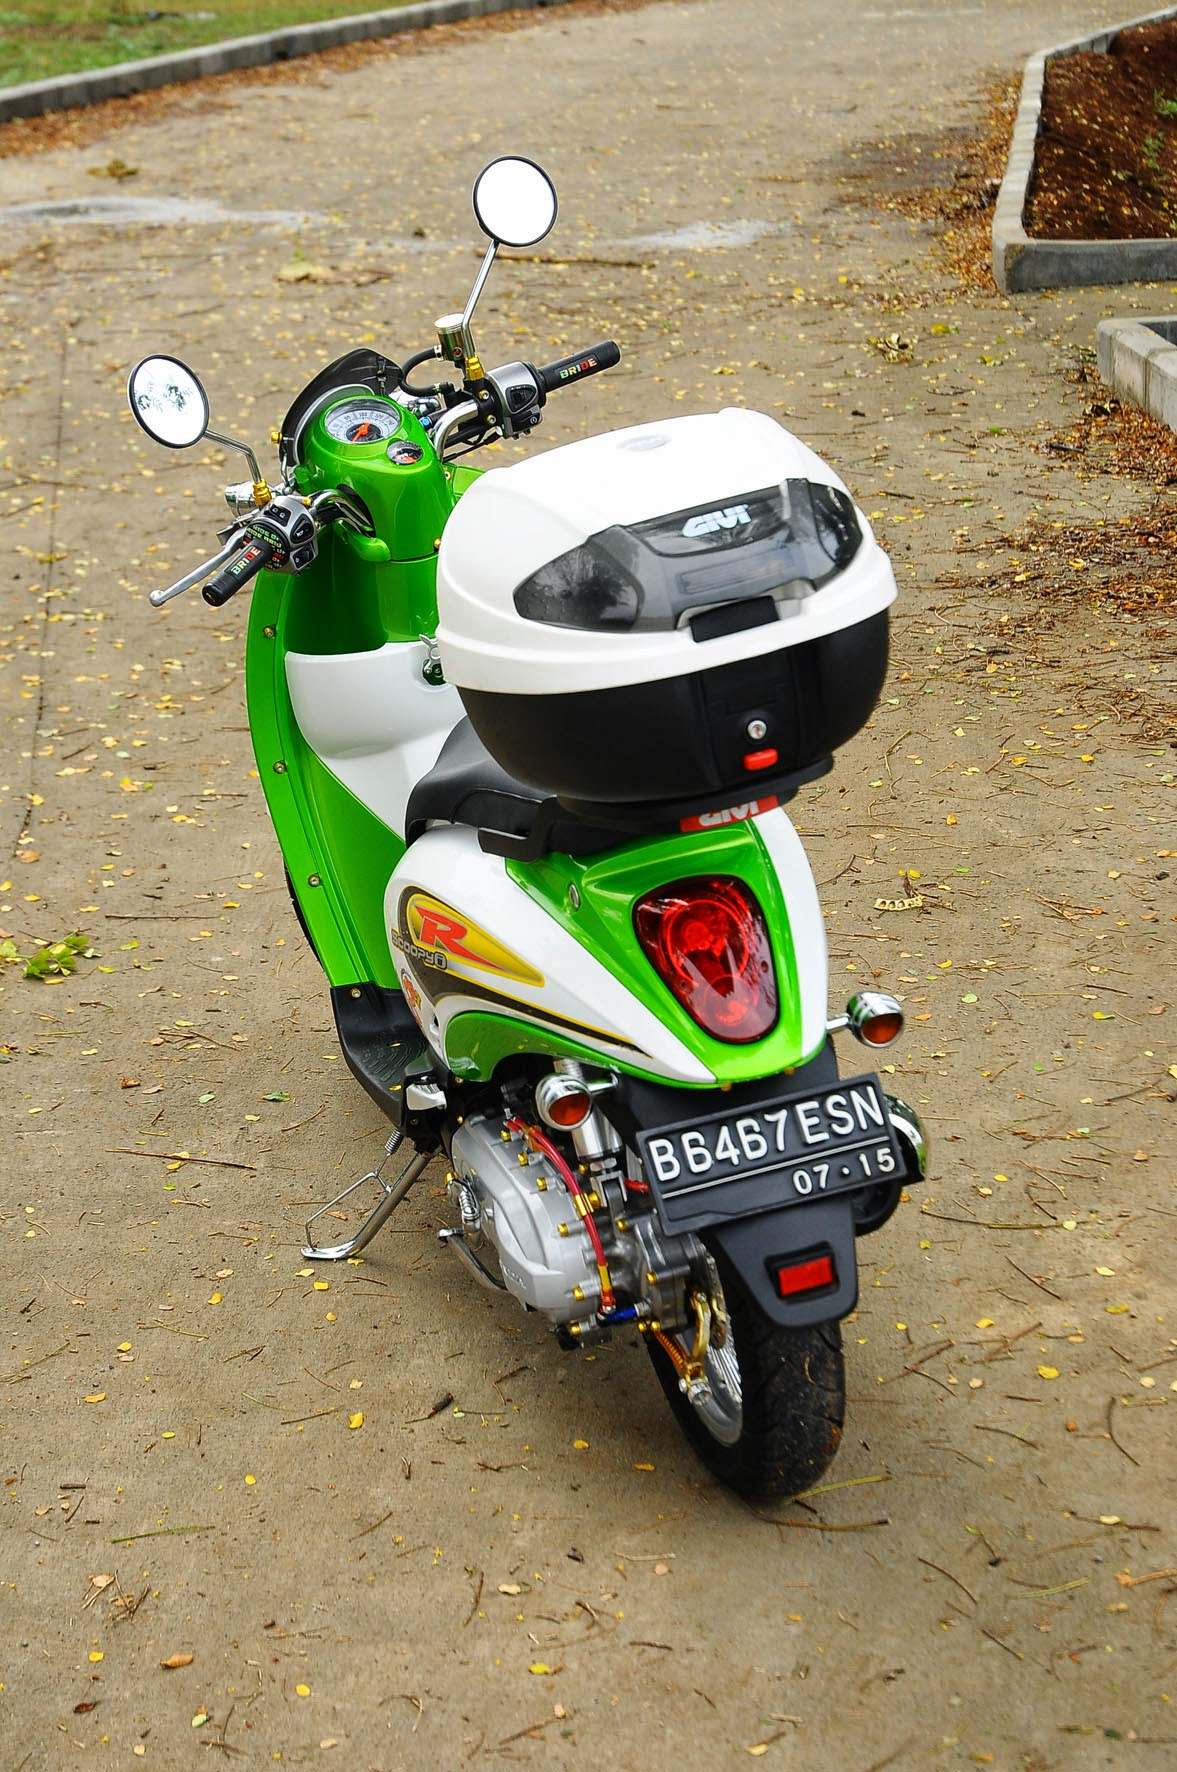 Modifikasi Scoopy Thai Look